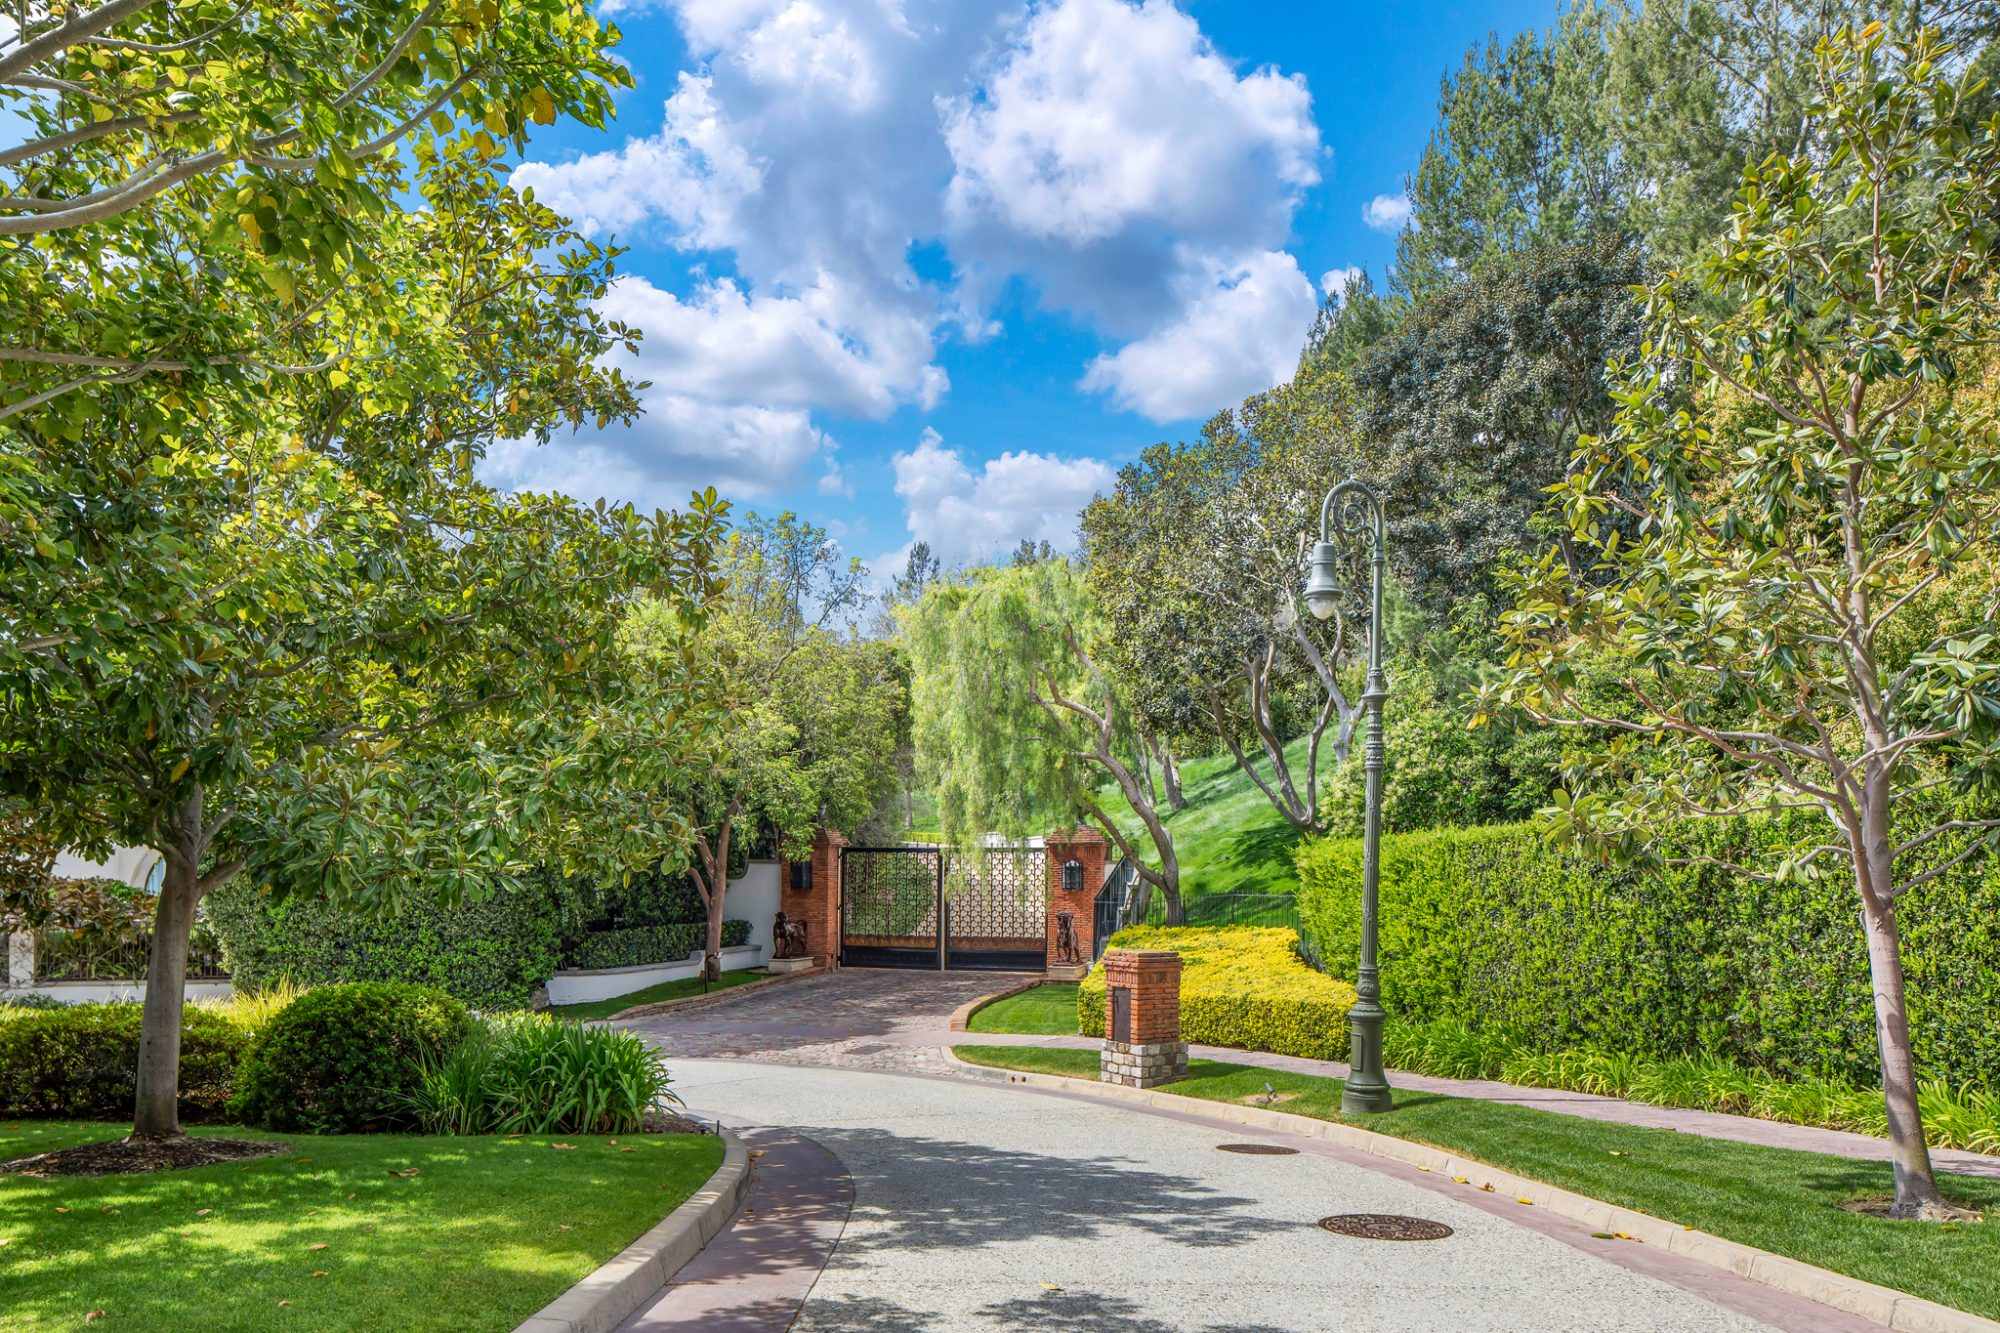 Sylvester Stallone Home for Sale